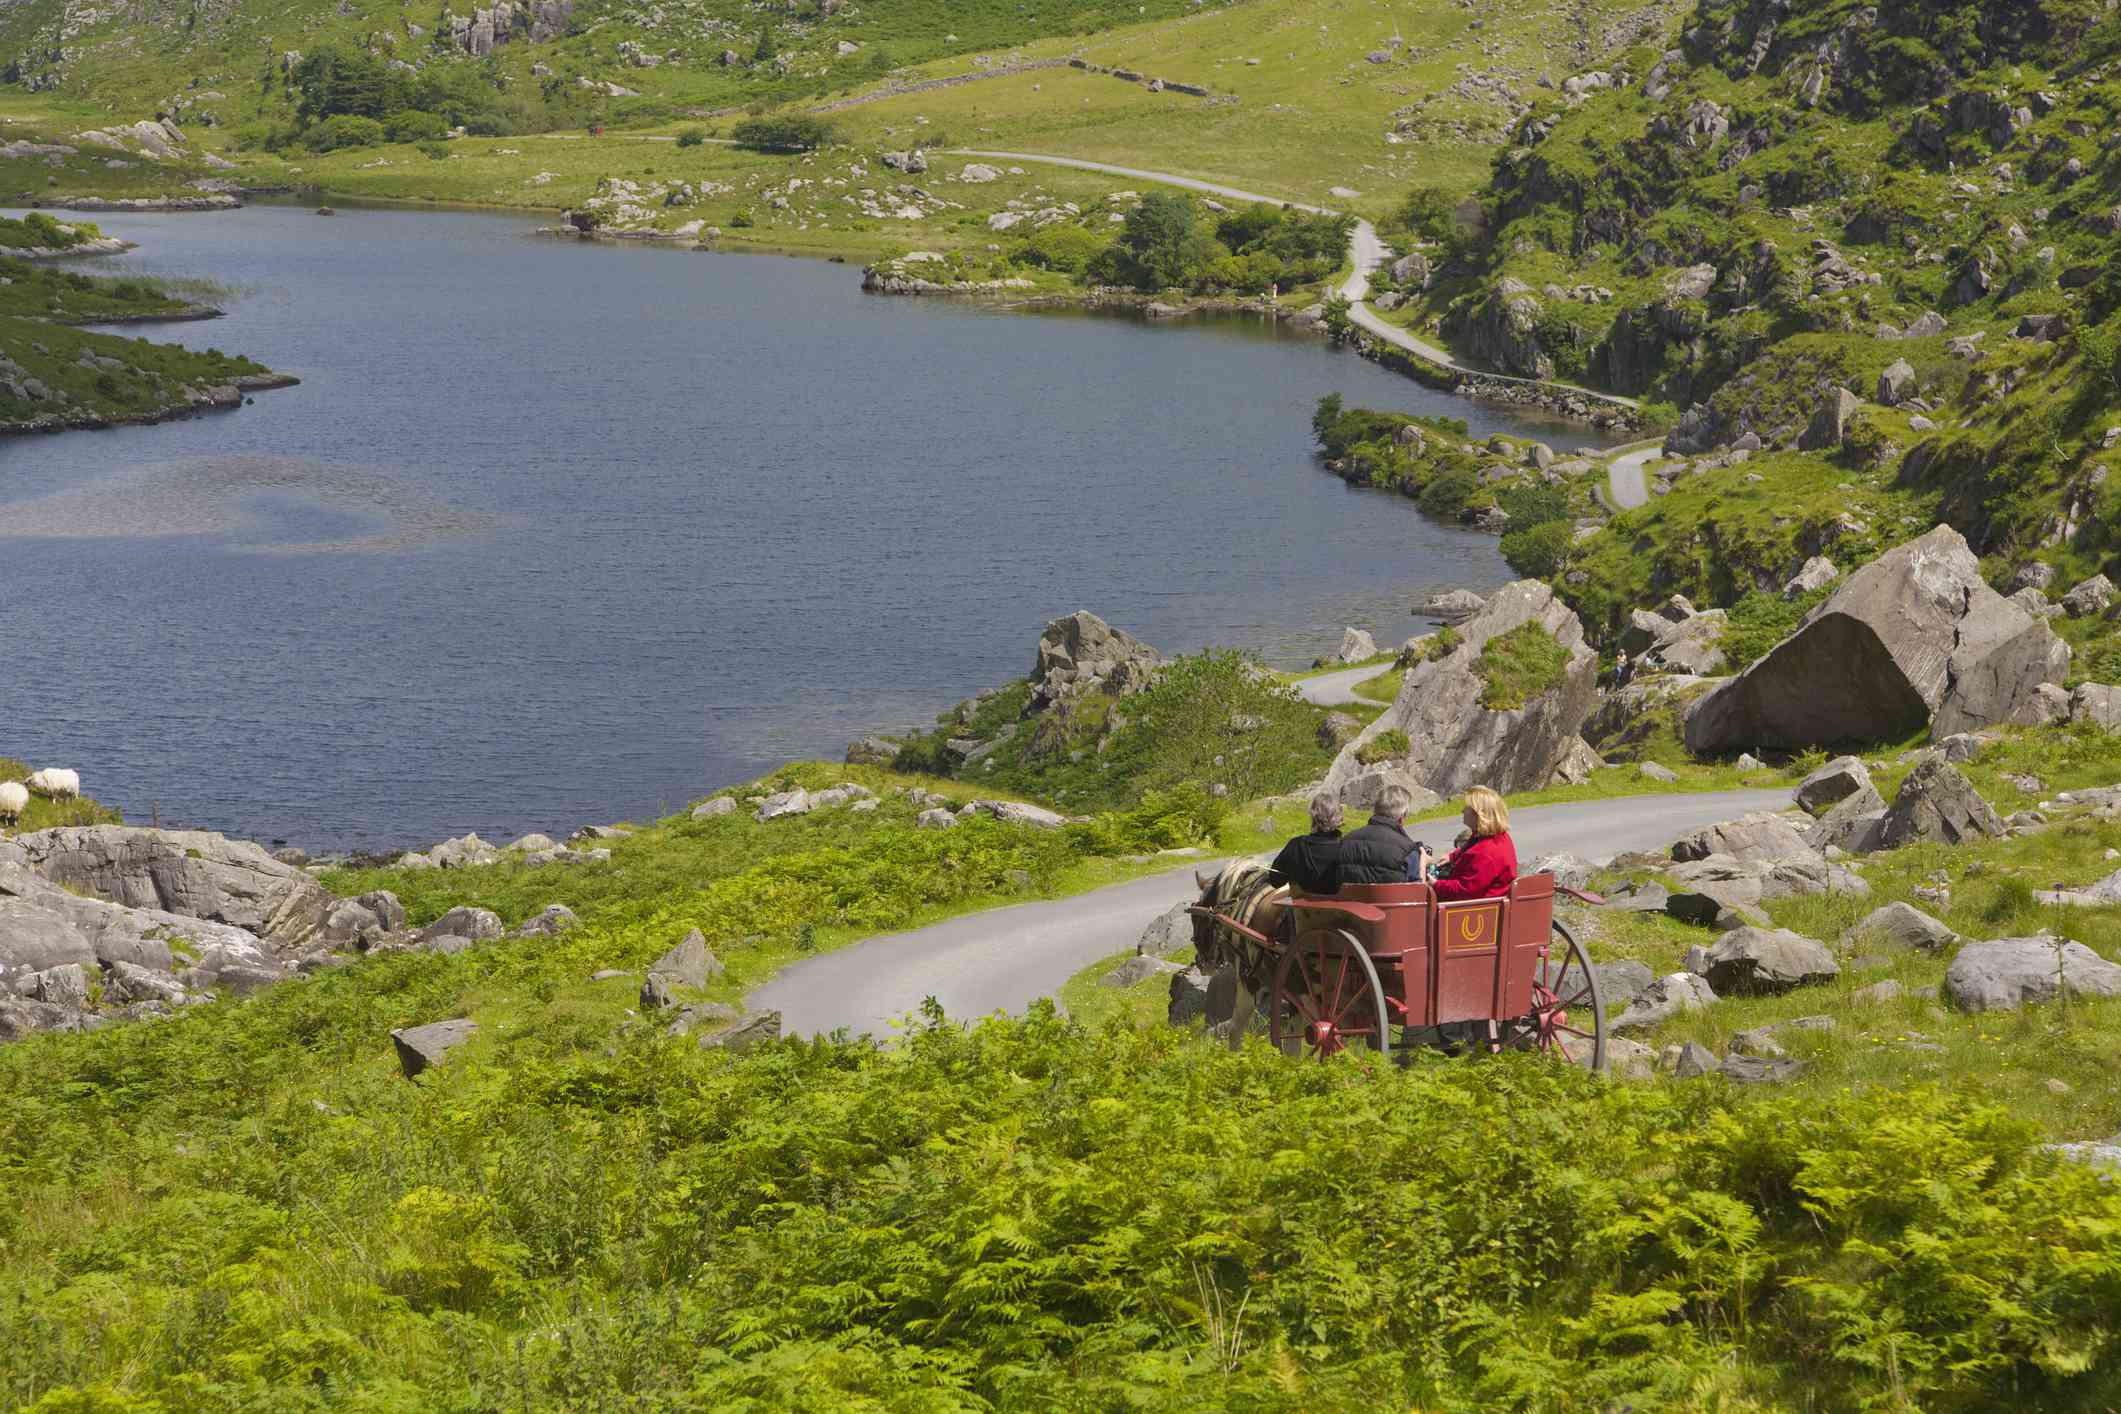 Tourists in Jaunting Car, Gap of Dunloe, County Kerry, Ireland